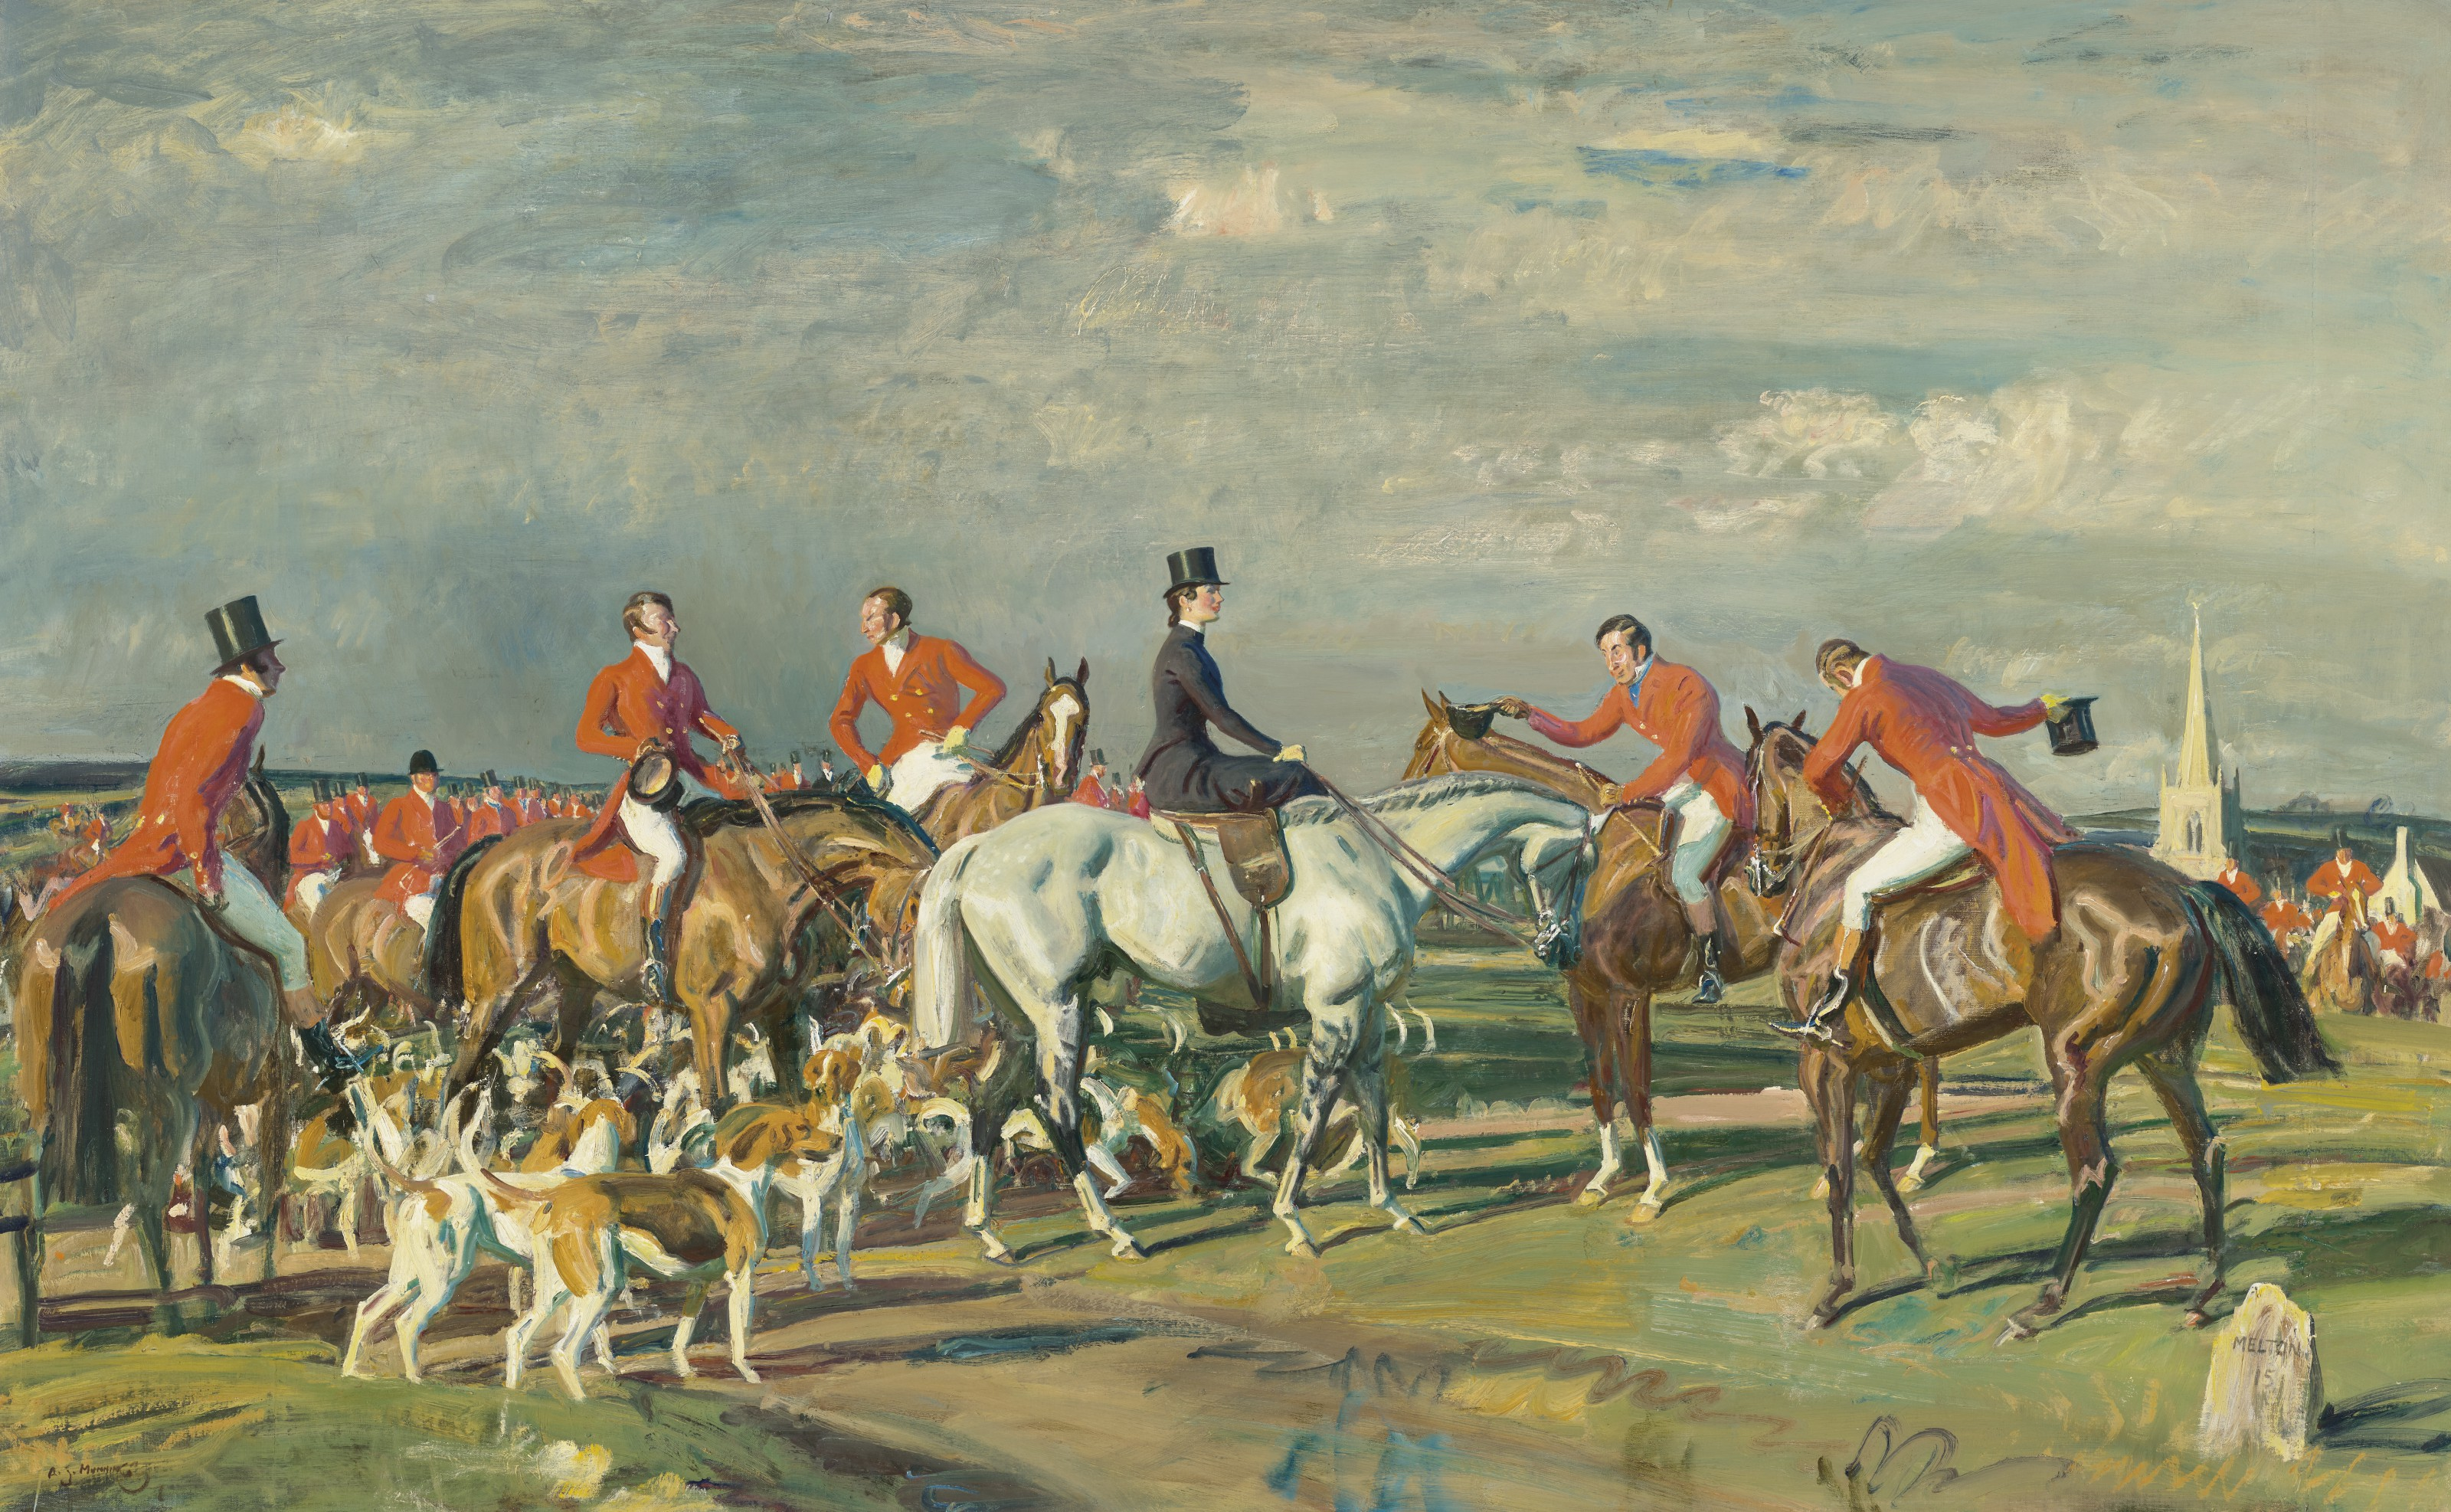 Sir Alfred James Munnings, P.R.A., R.W.S. (British, 1878-1959), Whos the lady and Two Studies. Oil on canvas. 44⅛ x 70  in (112.1 x 177.8  cm). Estimate $800,000-1,200,000. Offered in European Art Part I on 13 October 2021 at Christie's in New York